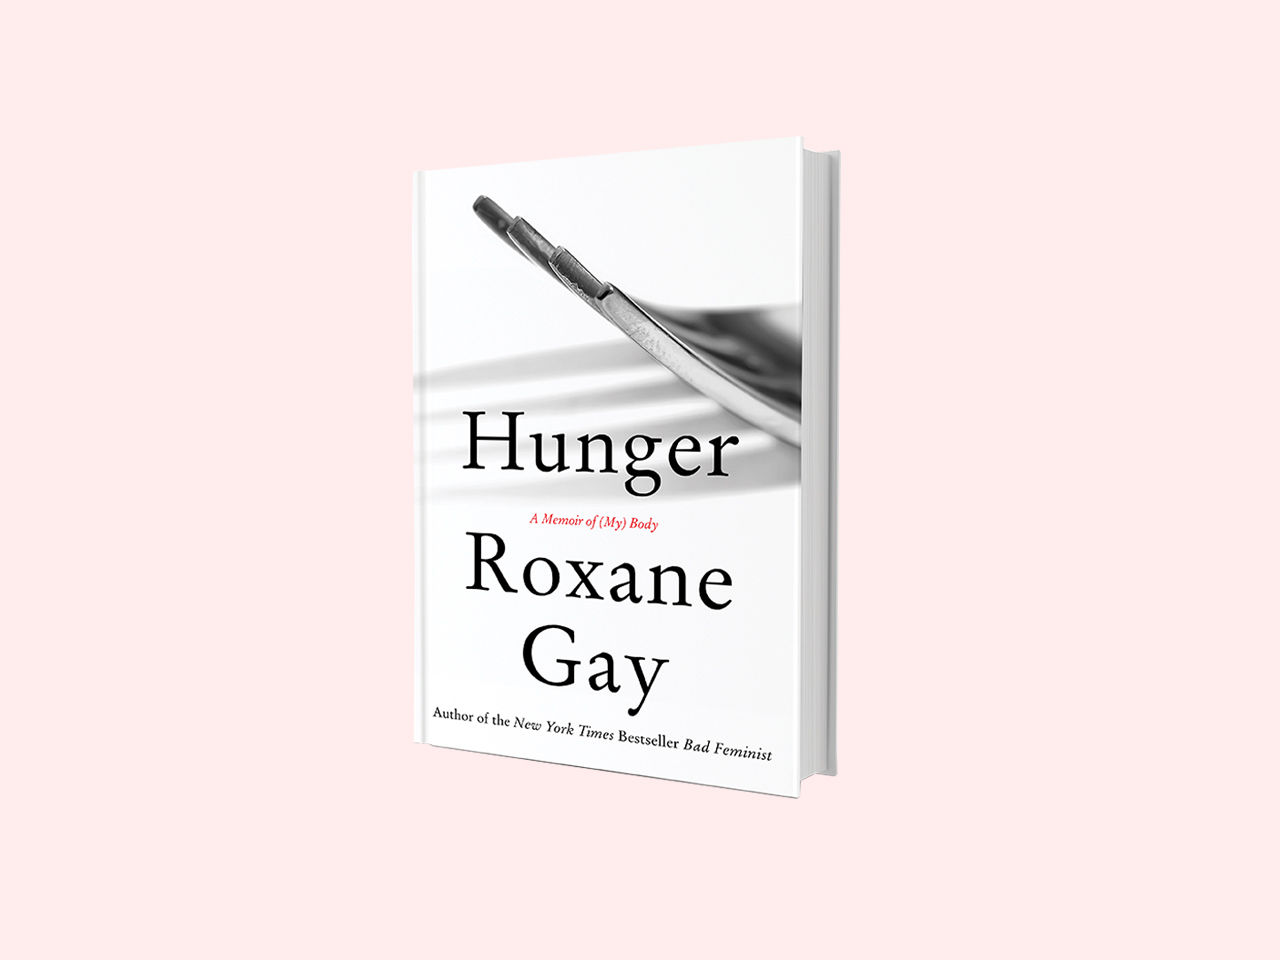 'This is my truth': Roxane Gay's hard look at her body